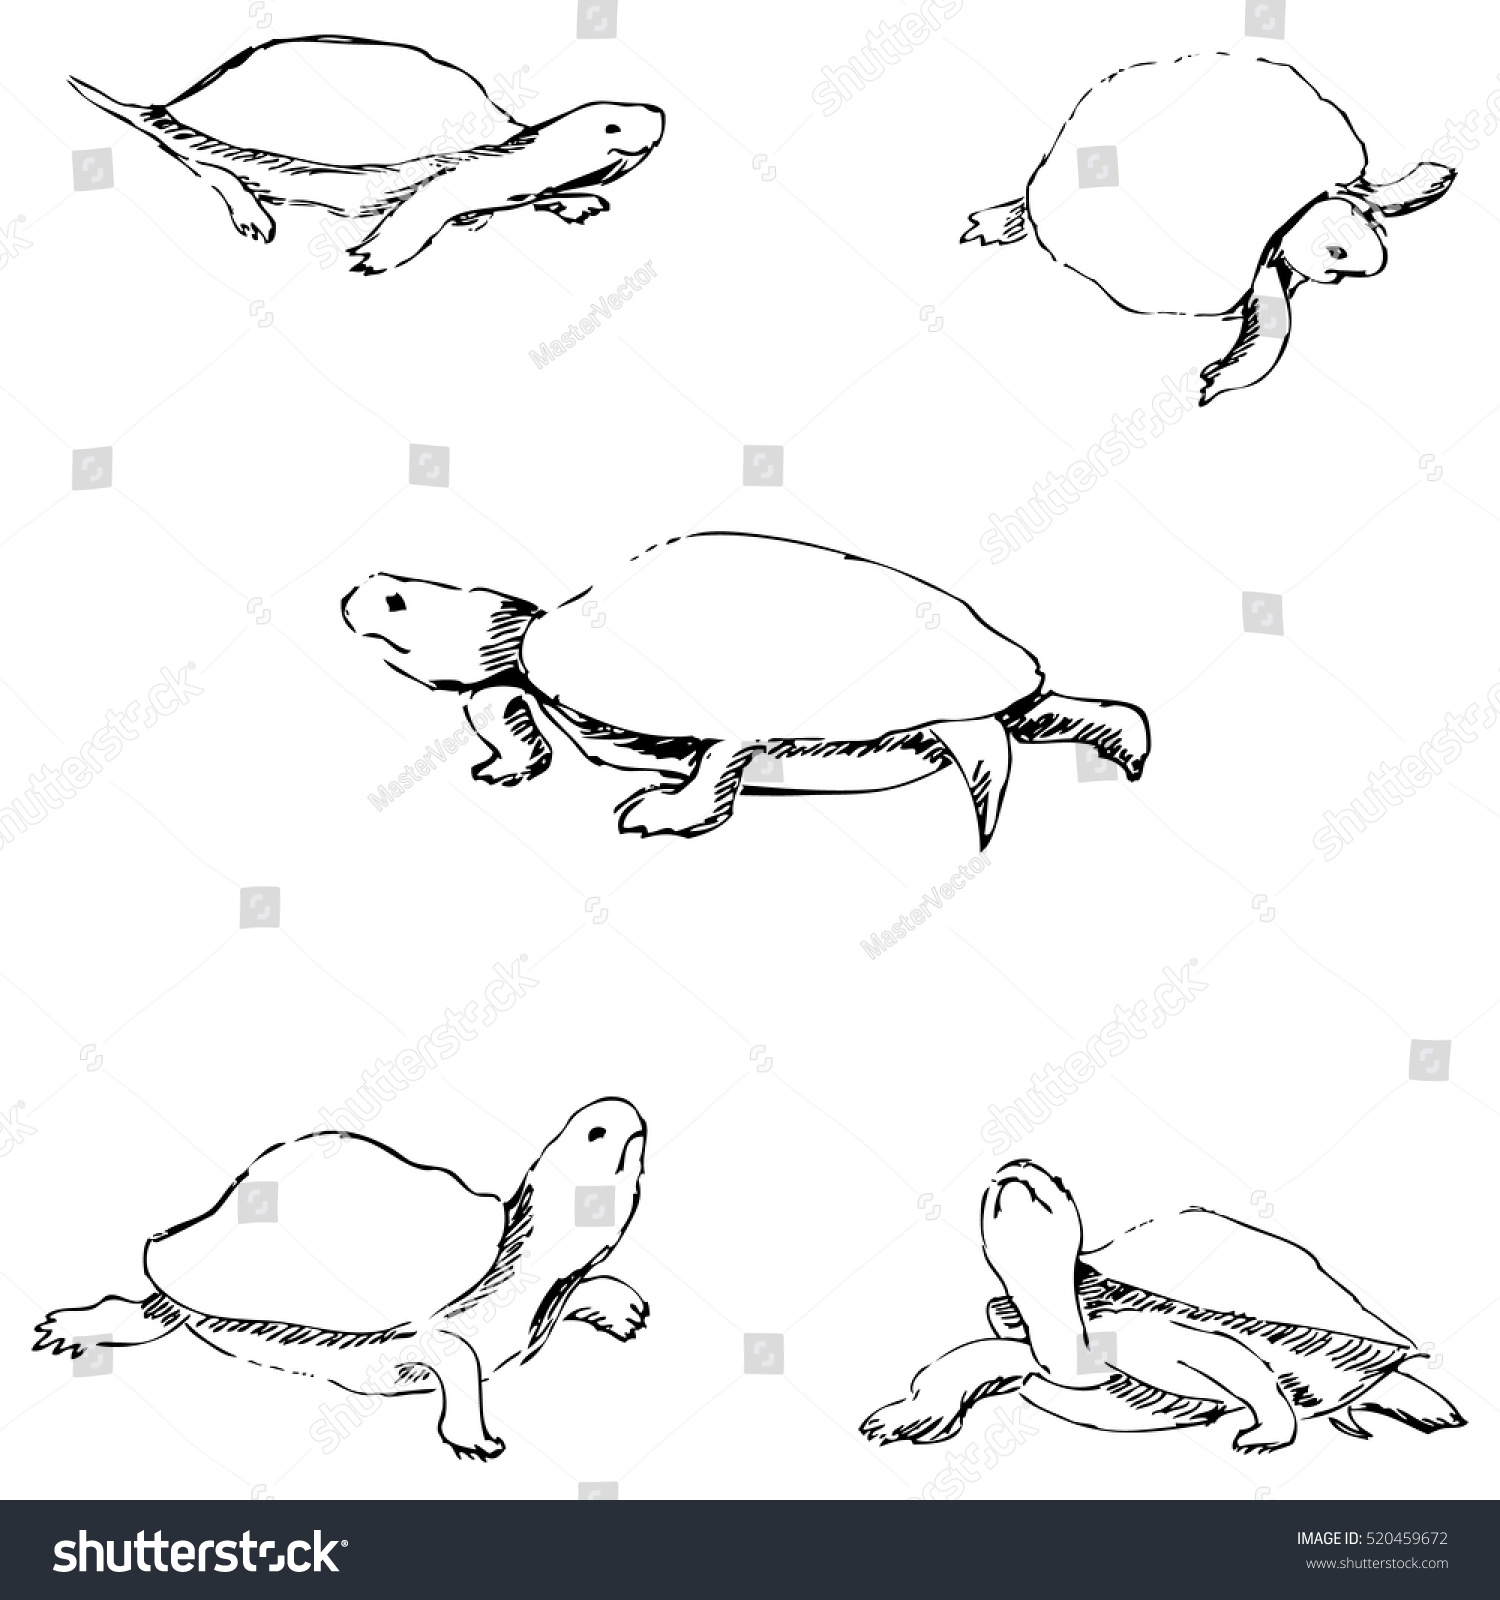 Turtles pencil sketch by hand stock vector royalty free 520459672